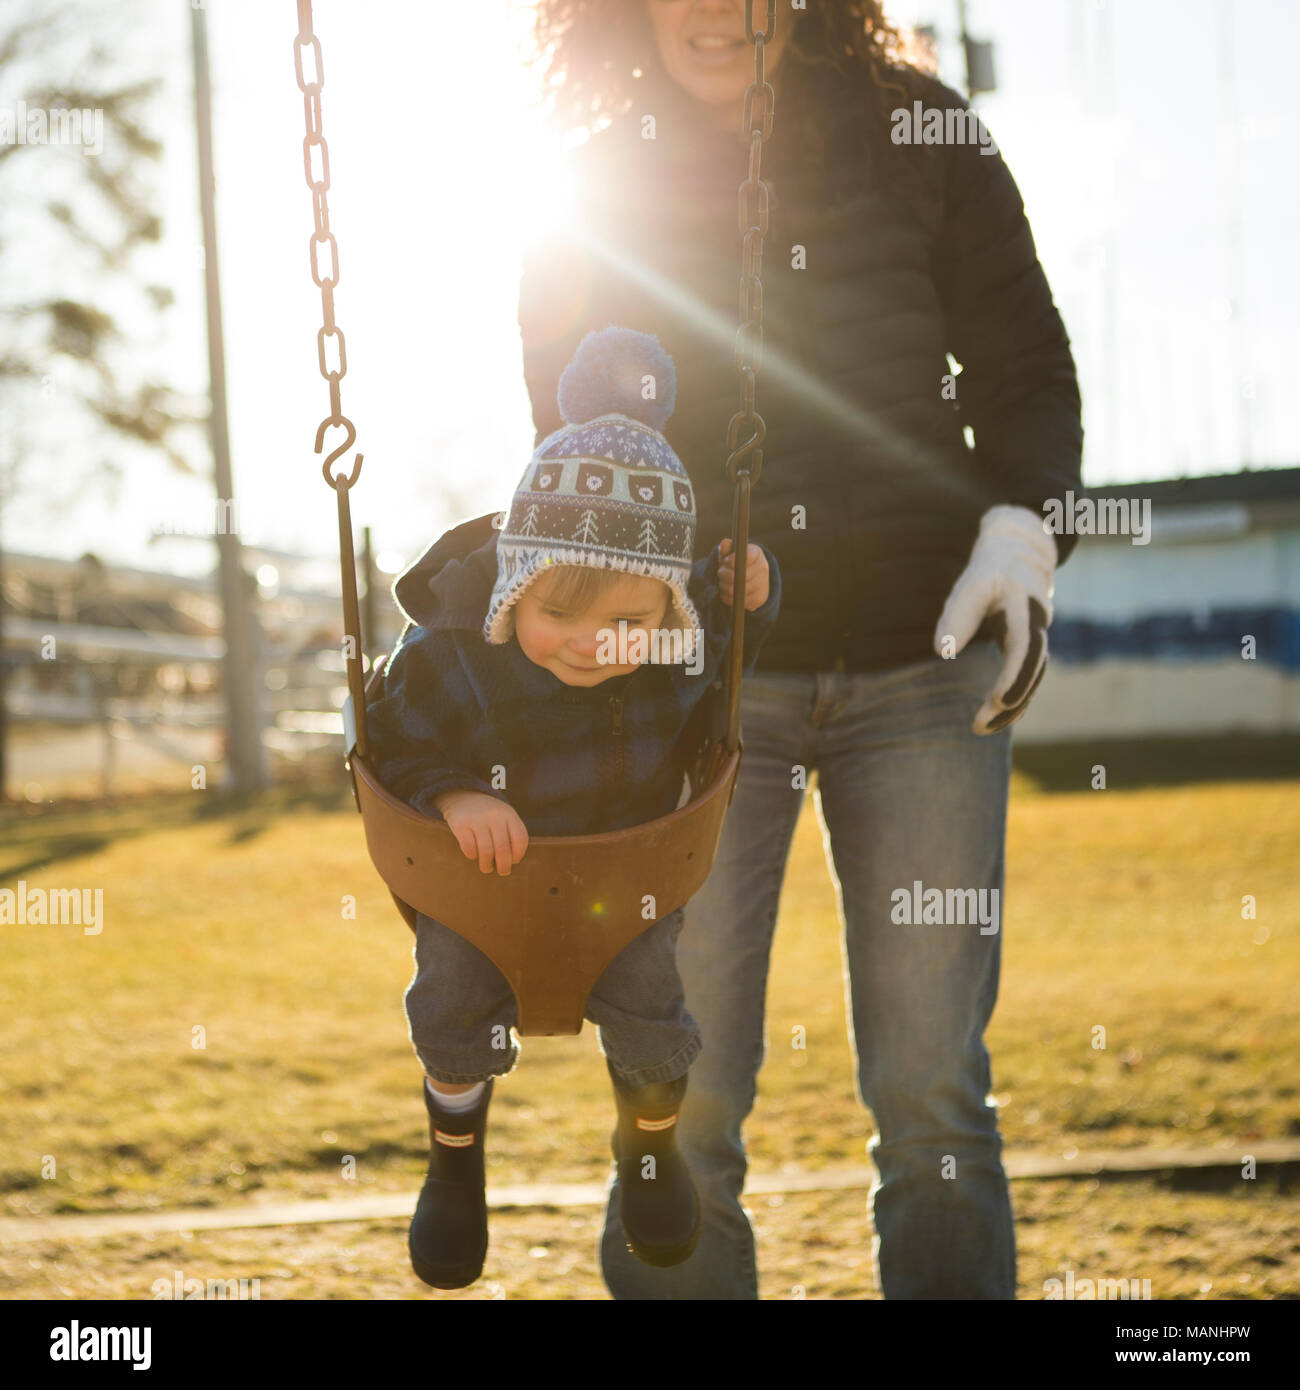 Smiling Mommy and Happy Boy Swing in the early Spring sunshine at local park. Brings good feelings of nostalgia and warm childhood memories. - Stock Image